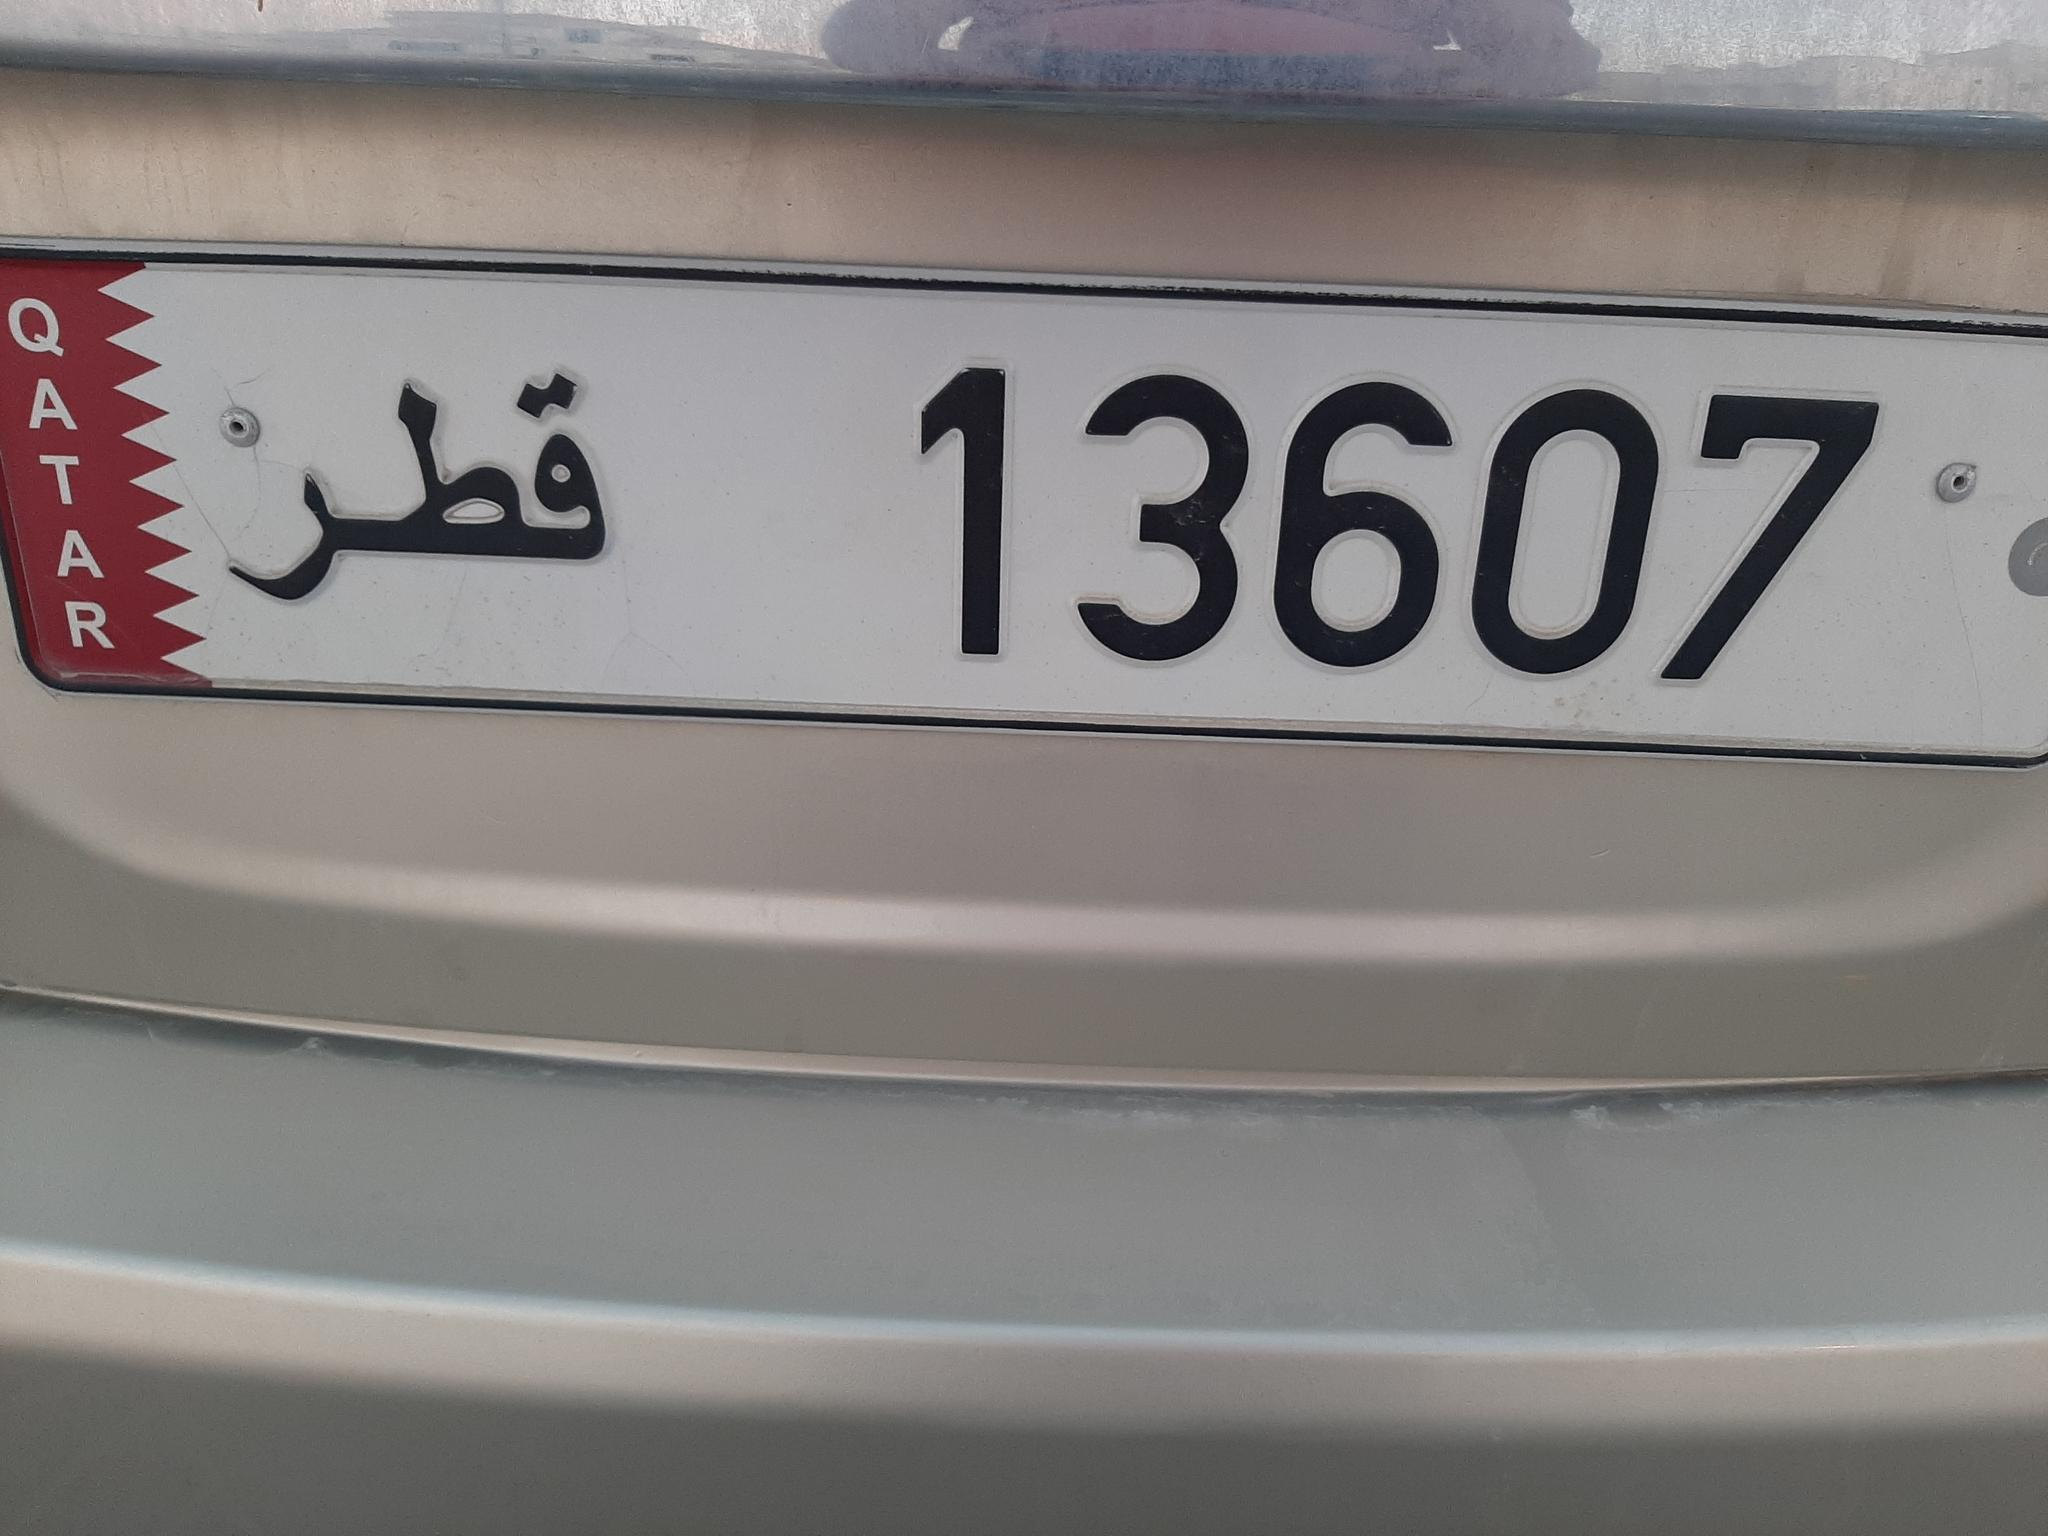 CAR PLATE NUMBER 13607